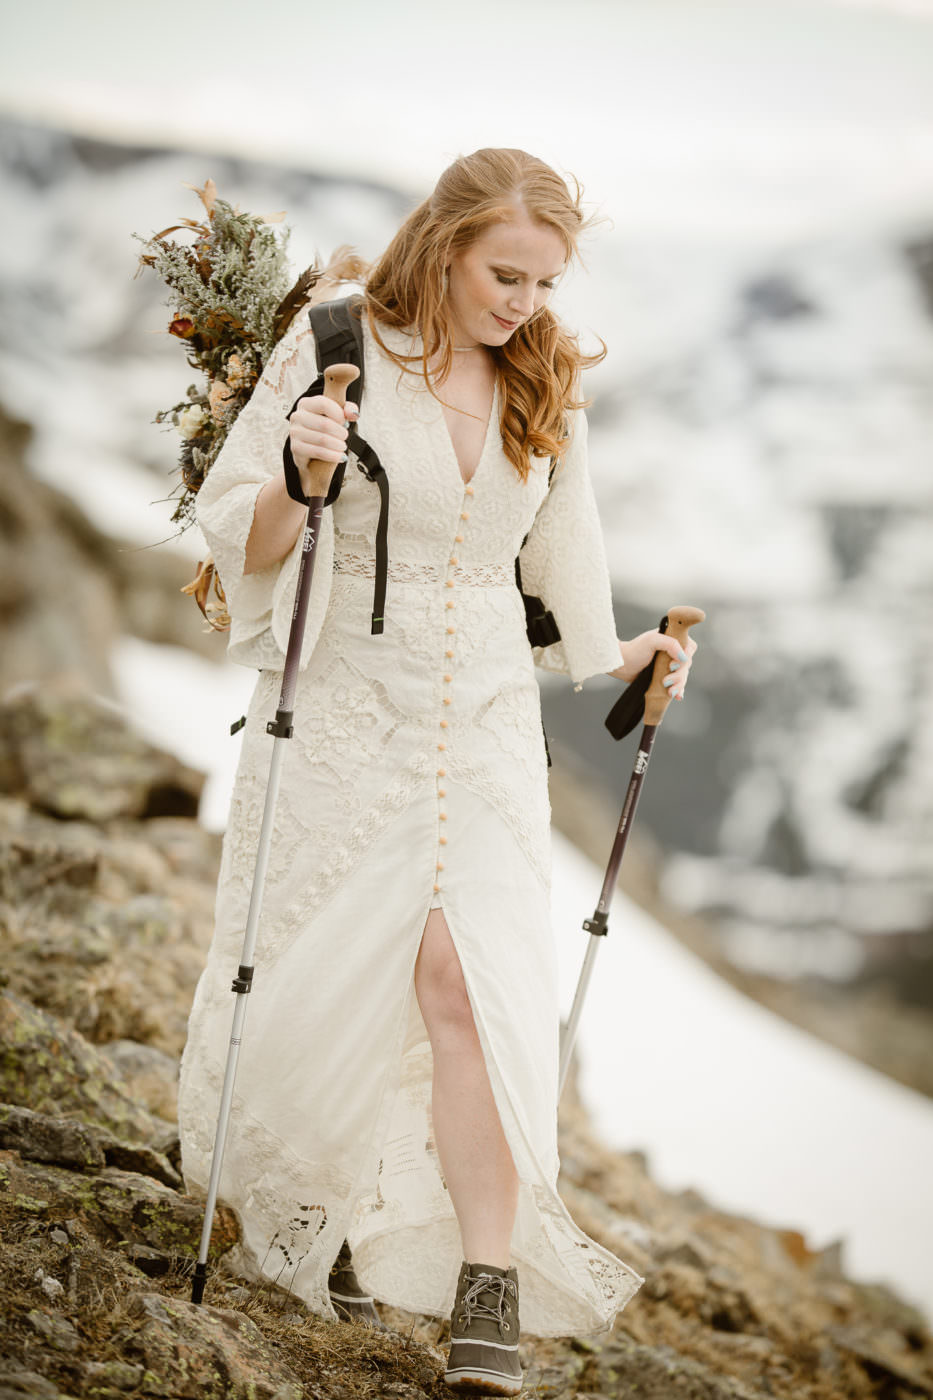 Rocky Mountain Adventure Weddings|ROCKY MOUNTAIN NATIONAL PARK HIKING ELOPEMENTS AND WEDDINGS|ADVENTURE ELOPEMENTS|COLORADO WEDDING PHOTOGRAPHER|INTIMATE WEDDINGS|SELF -SOLEMNIZING ELOPEMENT PHOTOGRAPHER ADVENTURE WEDDING PHOTOGRAPHER I ADVENTURE DESTINATION ELOPEMENT PHOTOGRAPHER